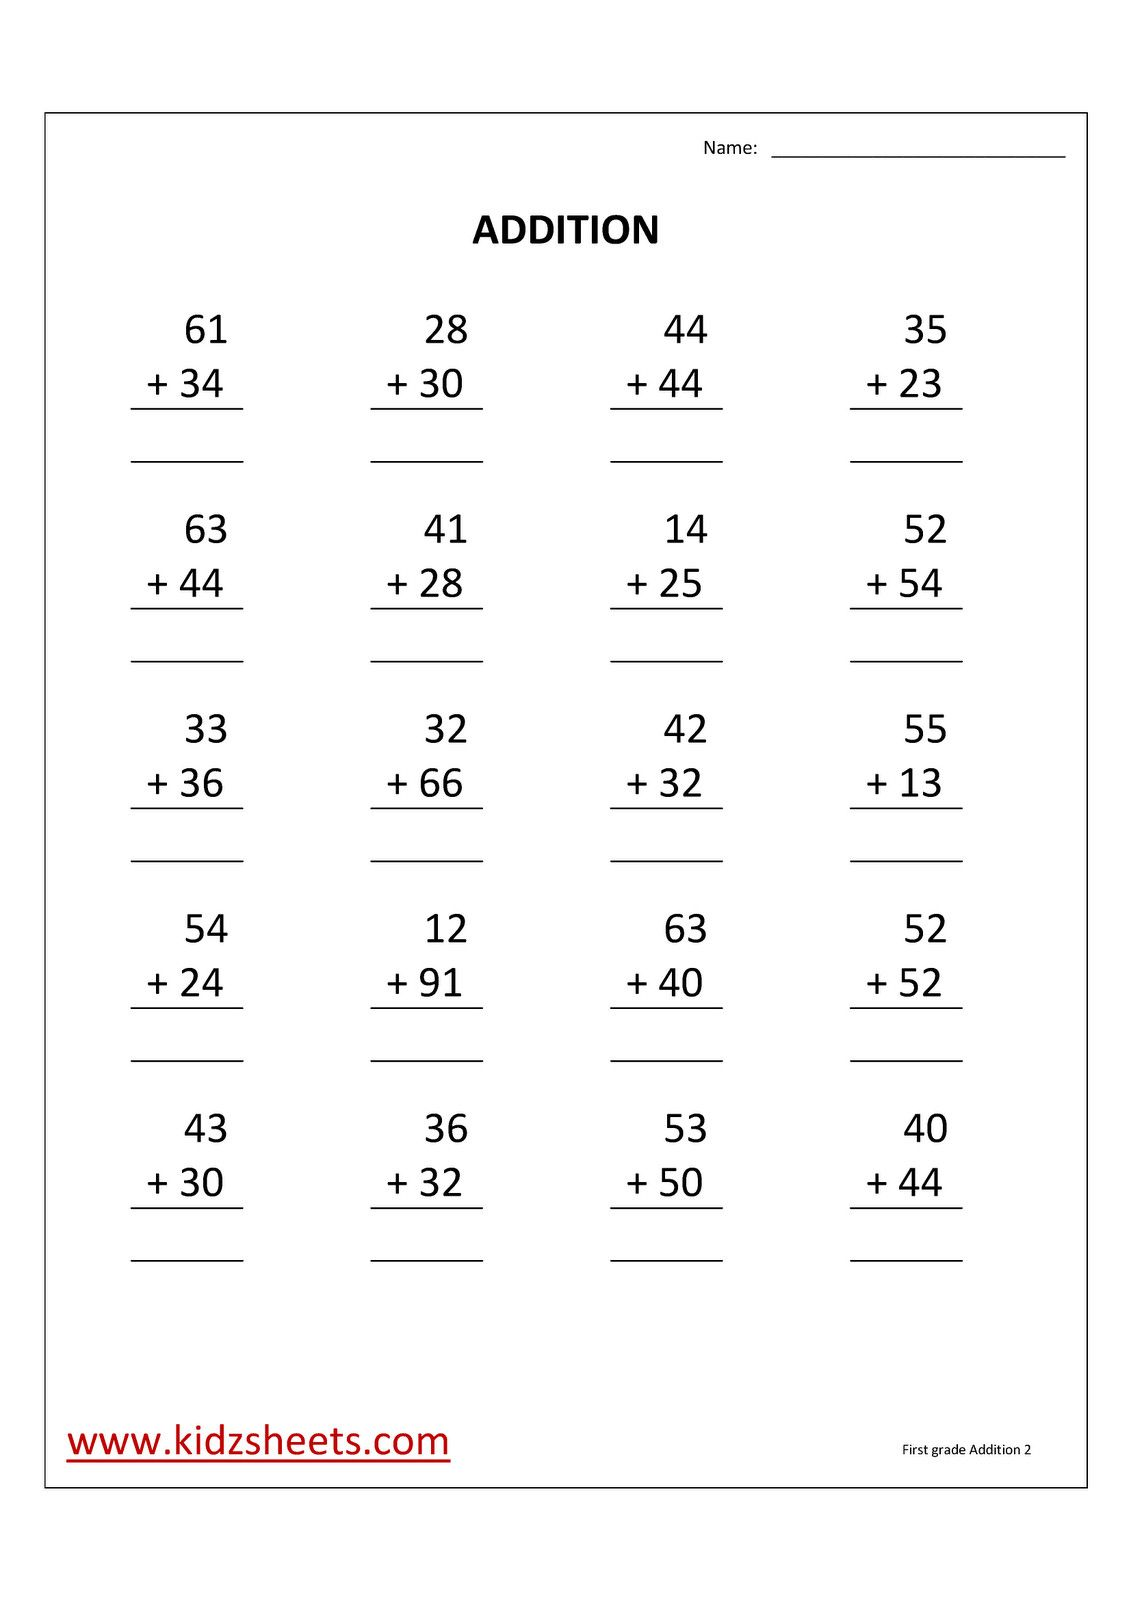 small resolution of 7 Free Addition Worksheets for Math Practice   2nd grade math worksheets